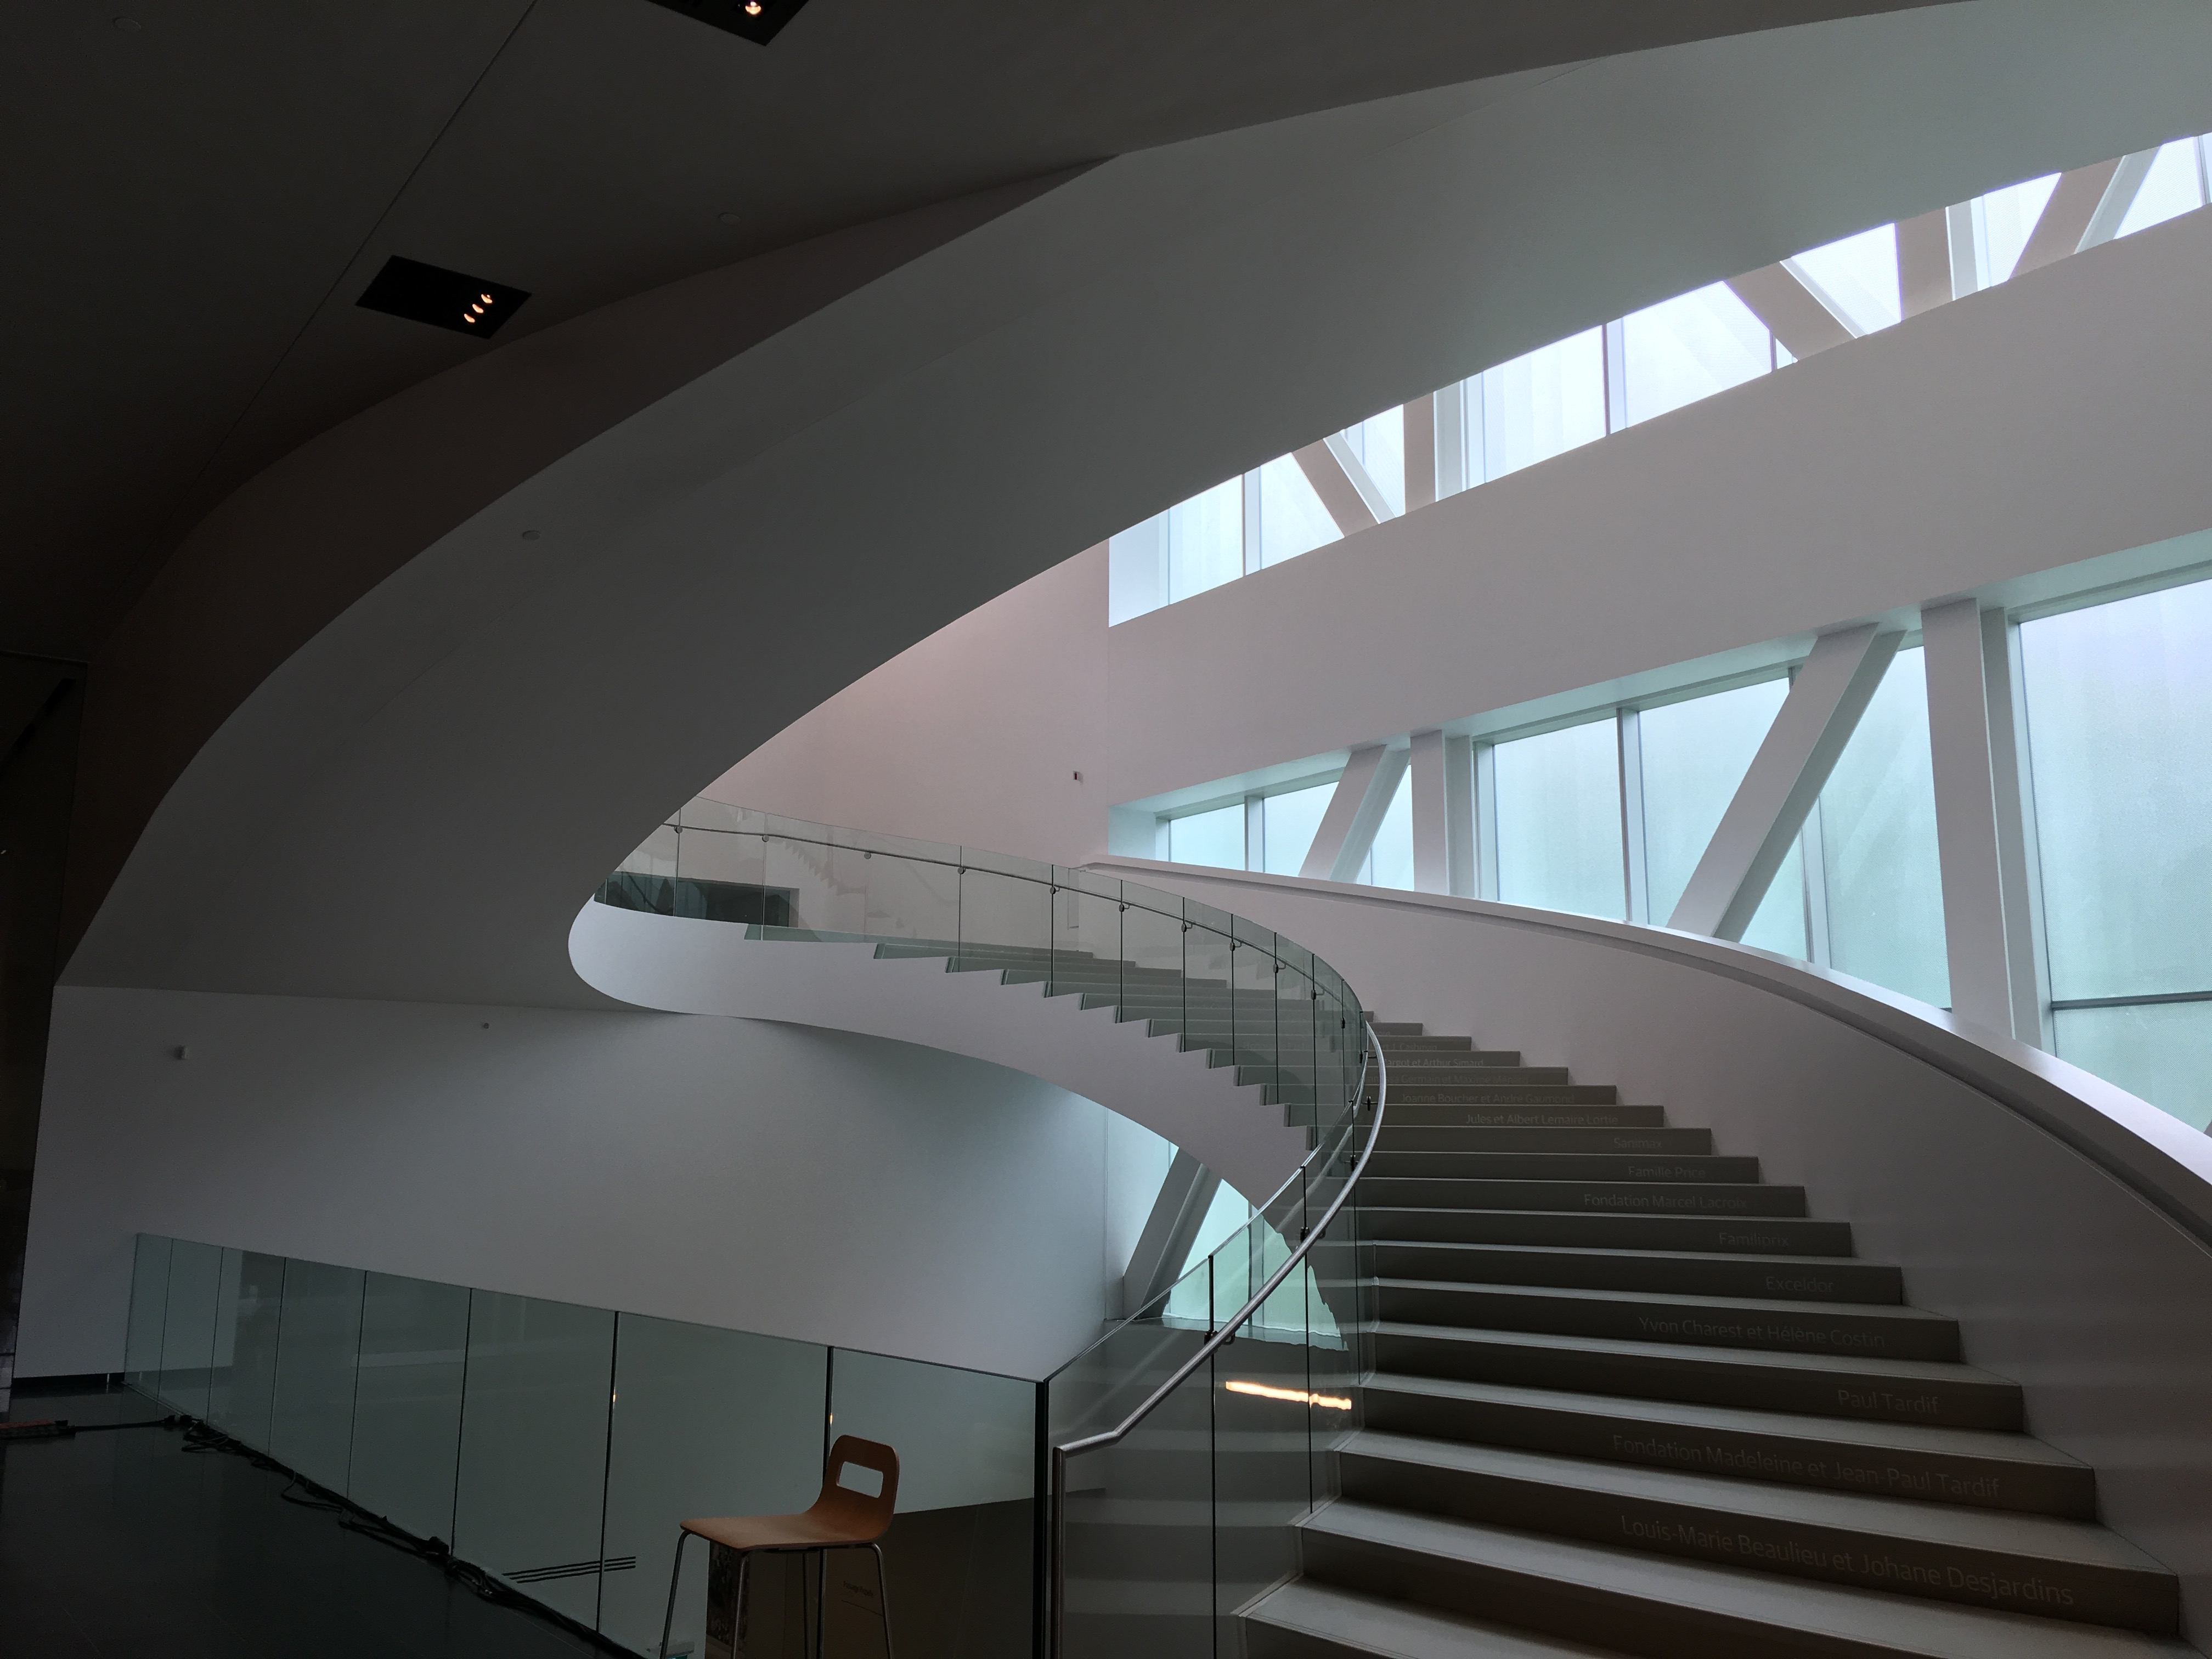 The central stairway at Quebec City's new National Museum of Fine Arts.